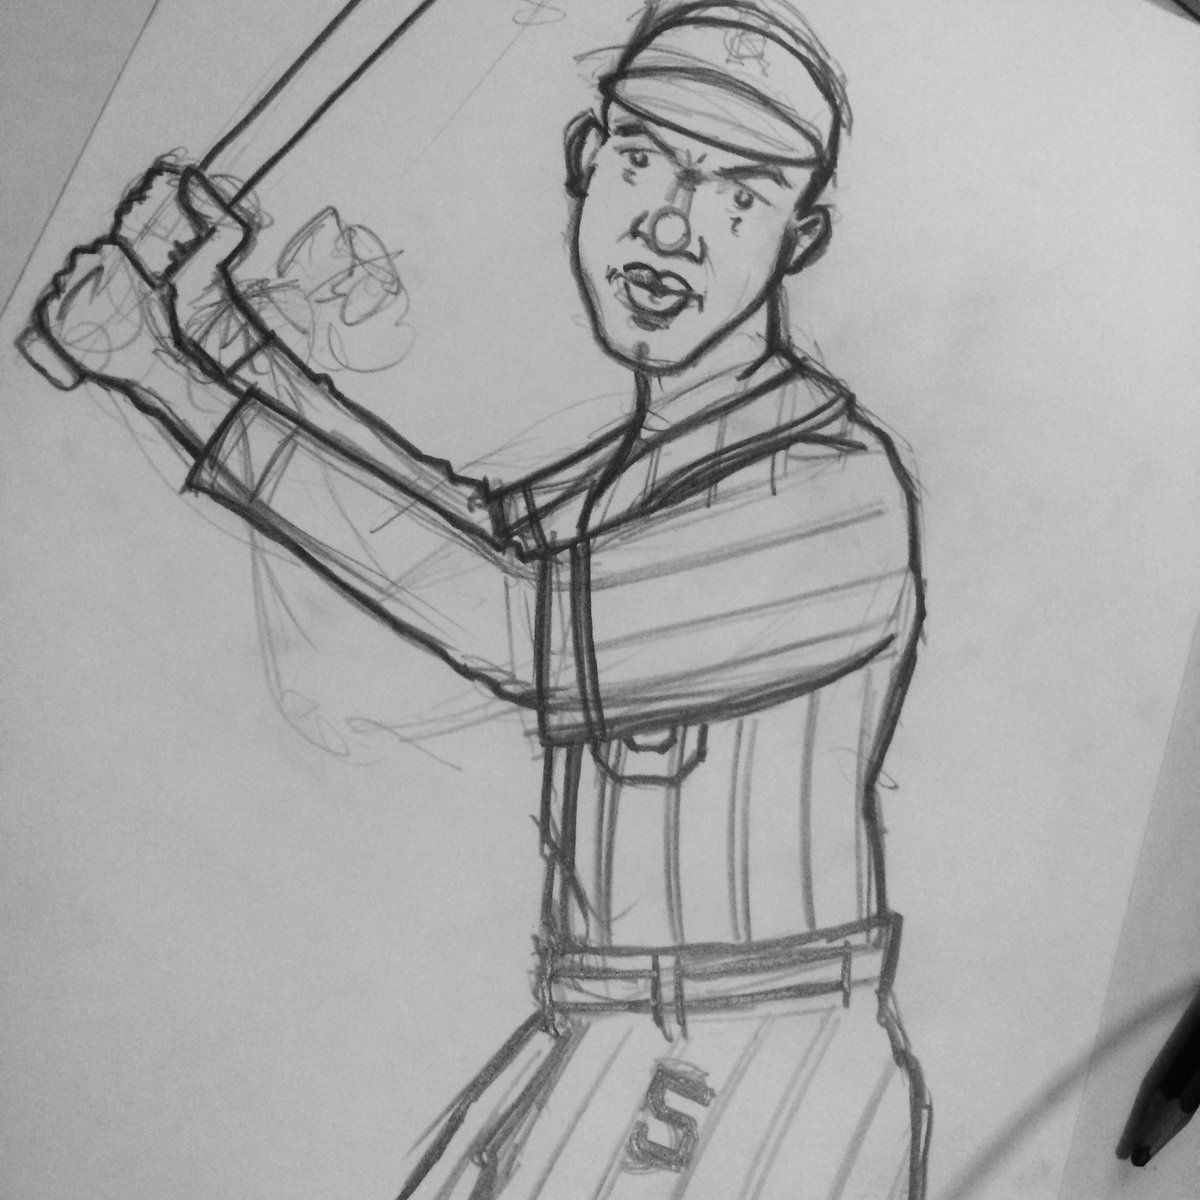 I don&#39;t often share sketches, but thought I would tonight. Here&#39;s a Jackie Robinson piece I&#39;m working on. #kansascitymonarchs #baseball <br>http://pic.twitter.com/MZnL8CosYD